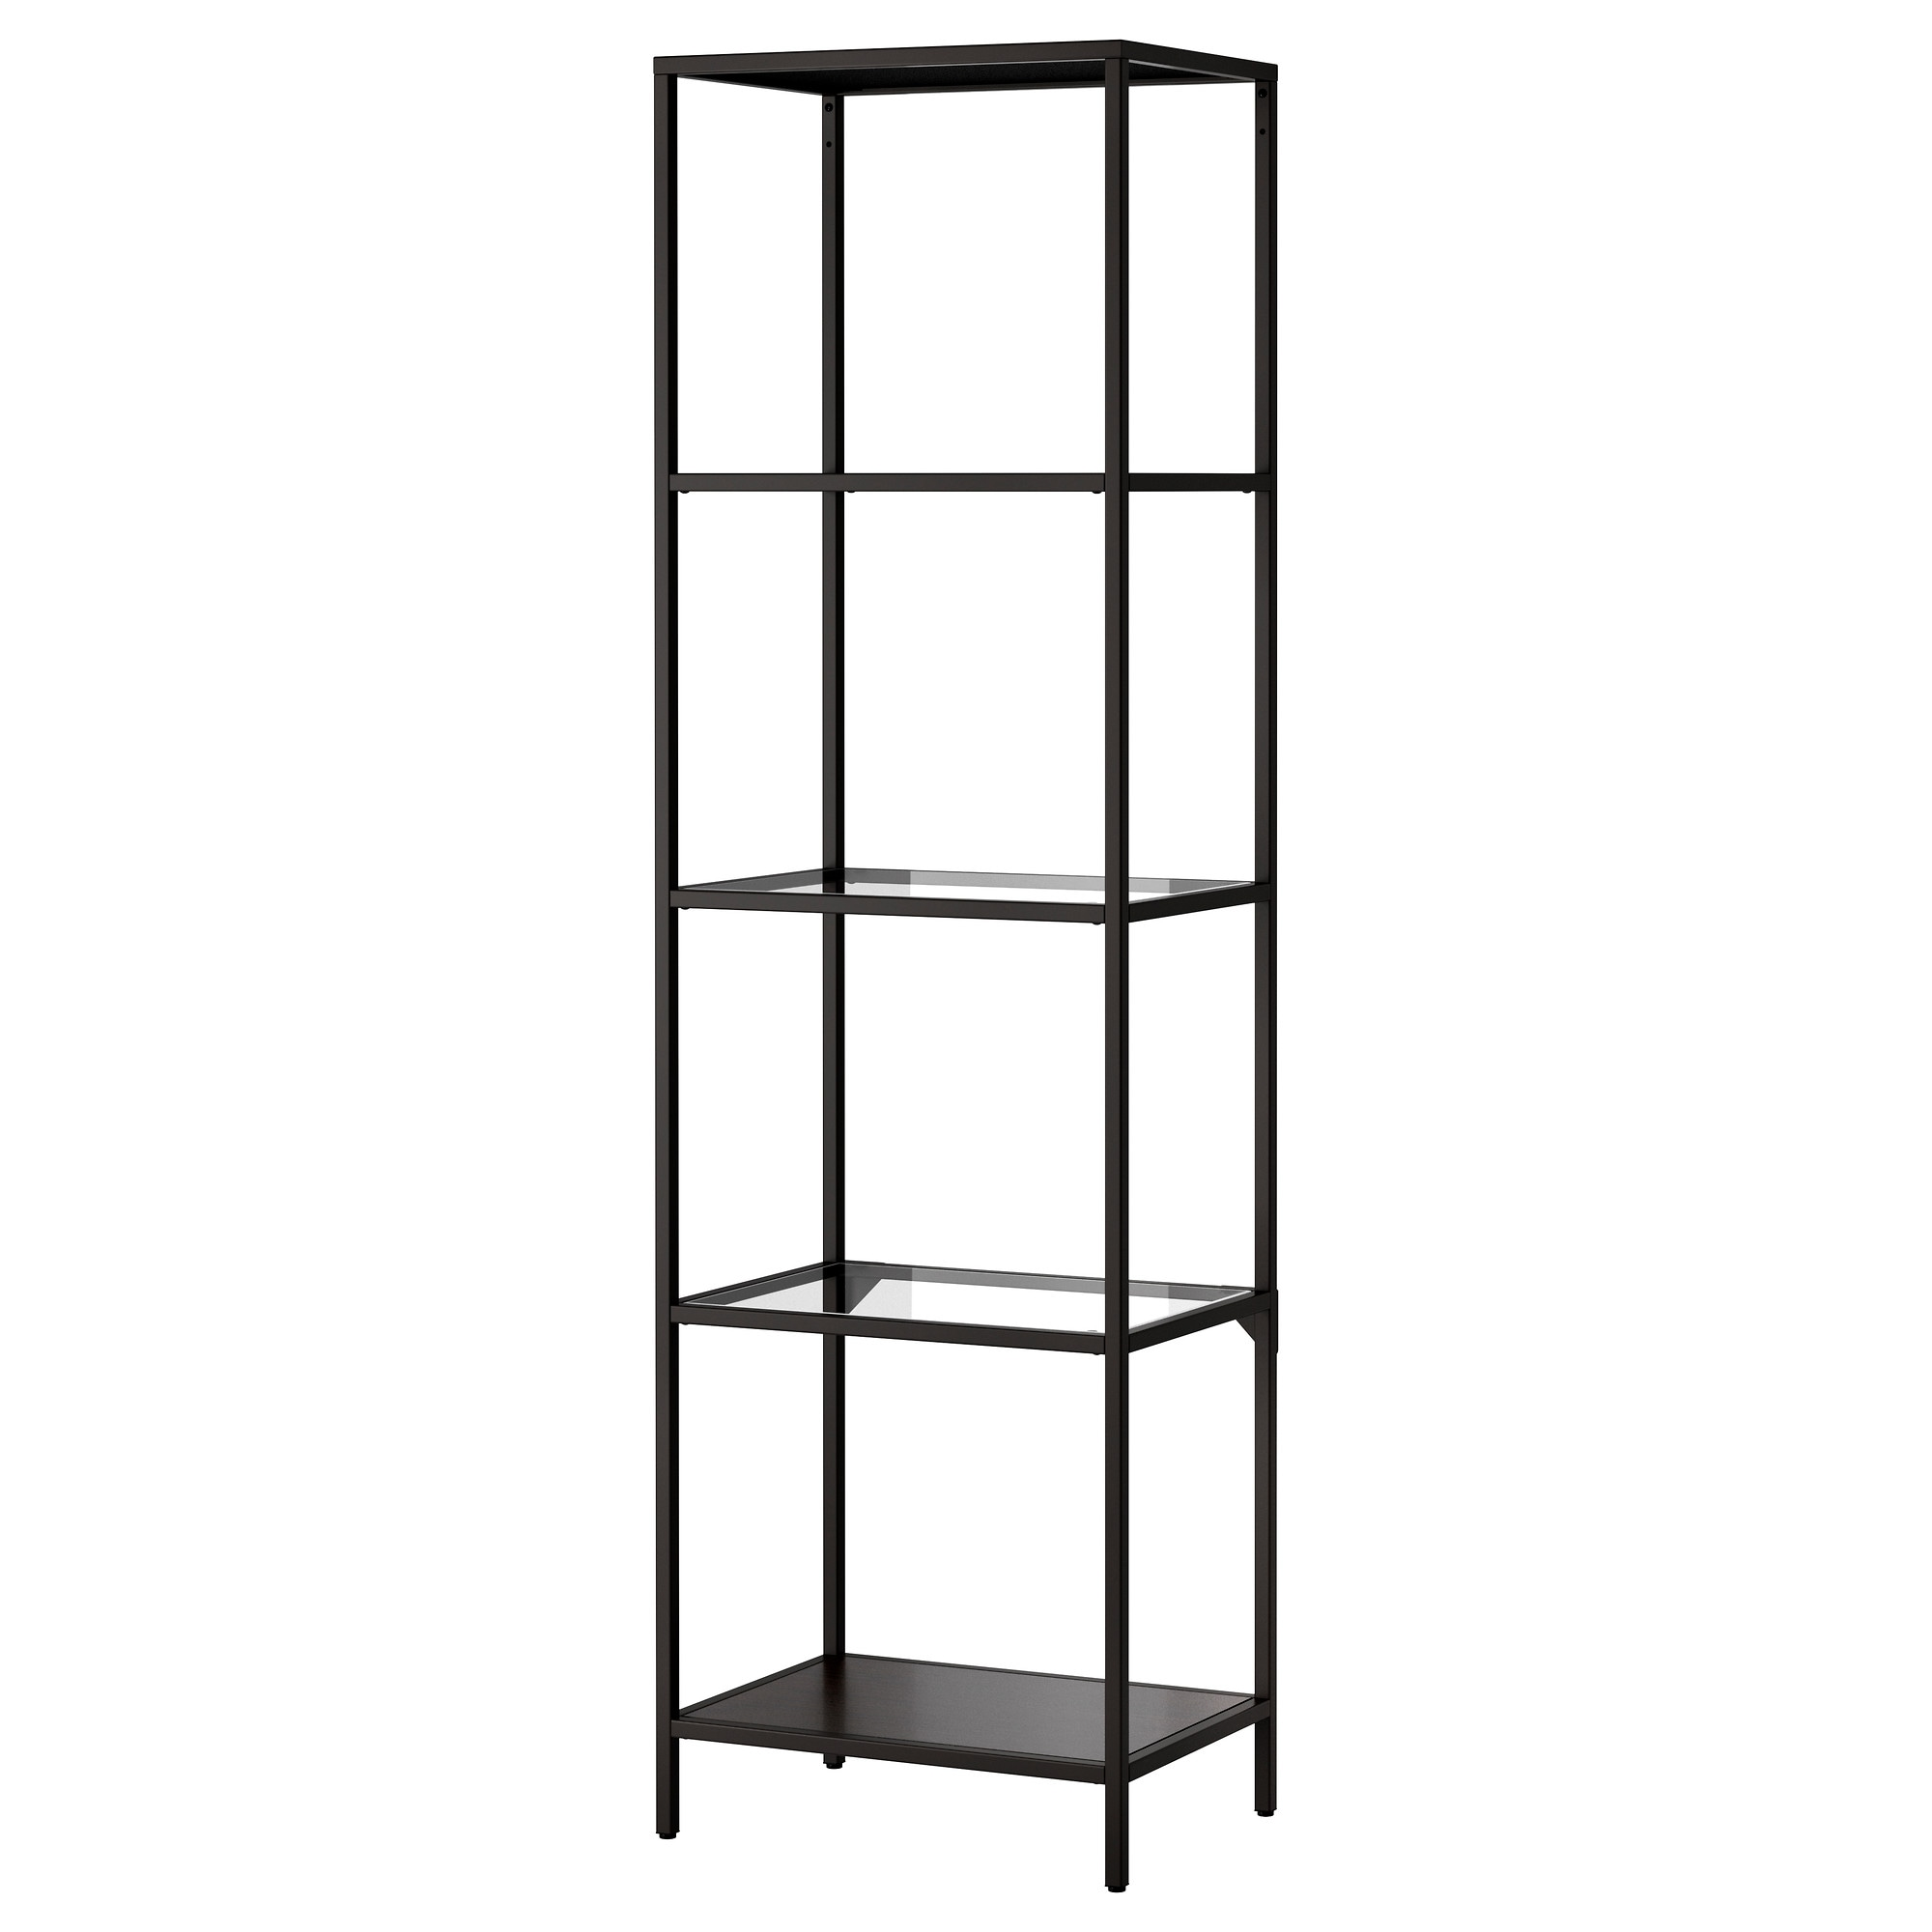 . VITTSJ  Shelf unit   black brown glass   IKEA